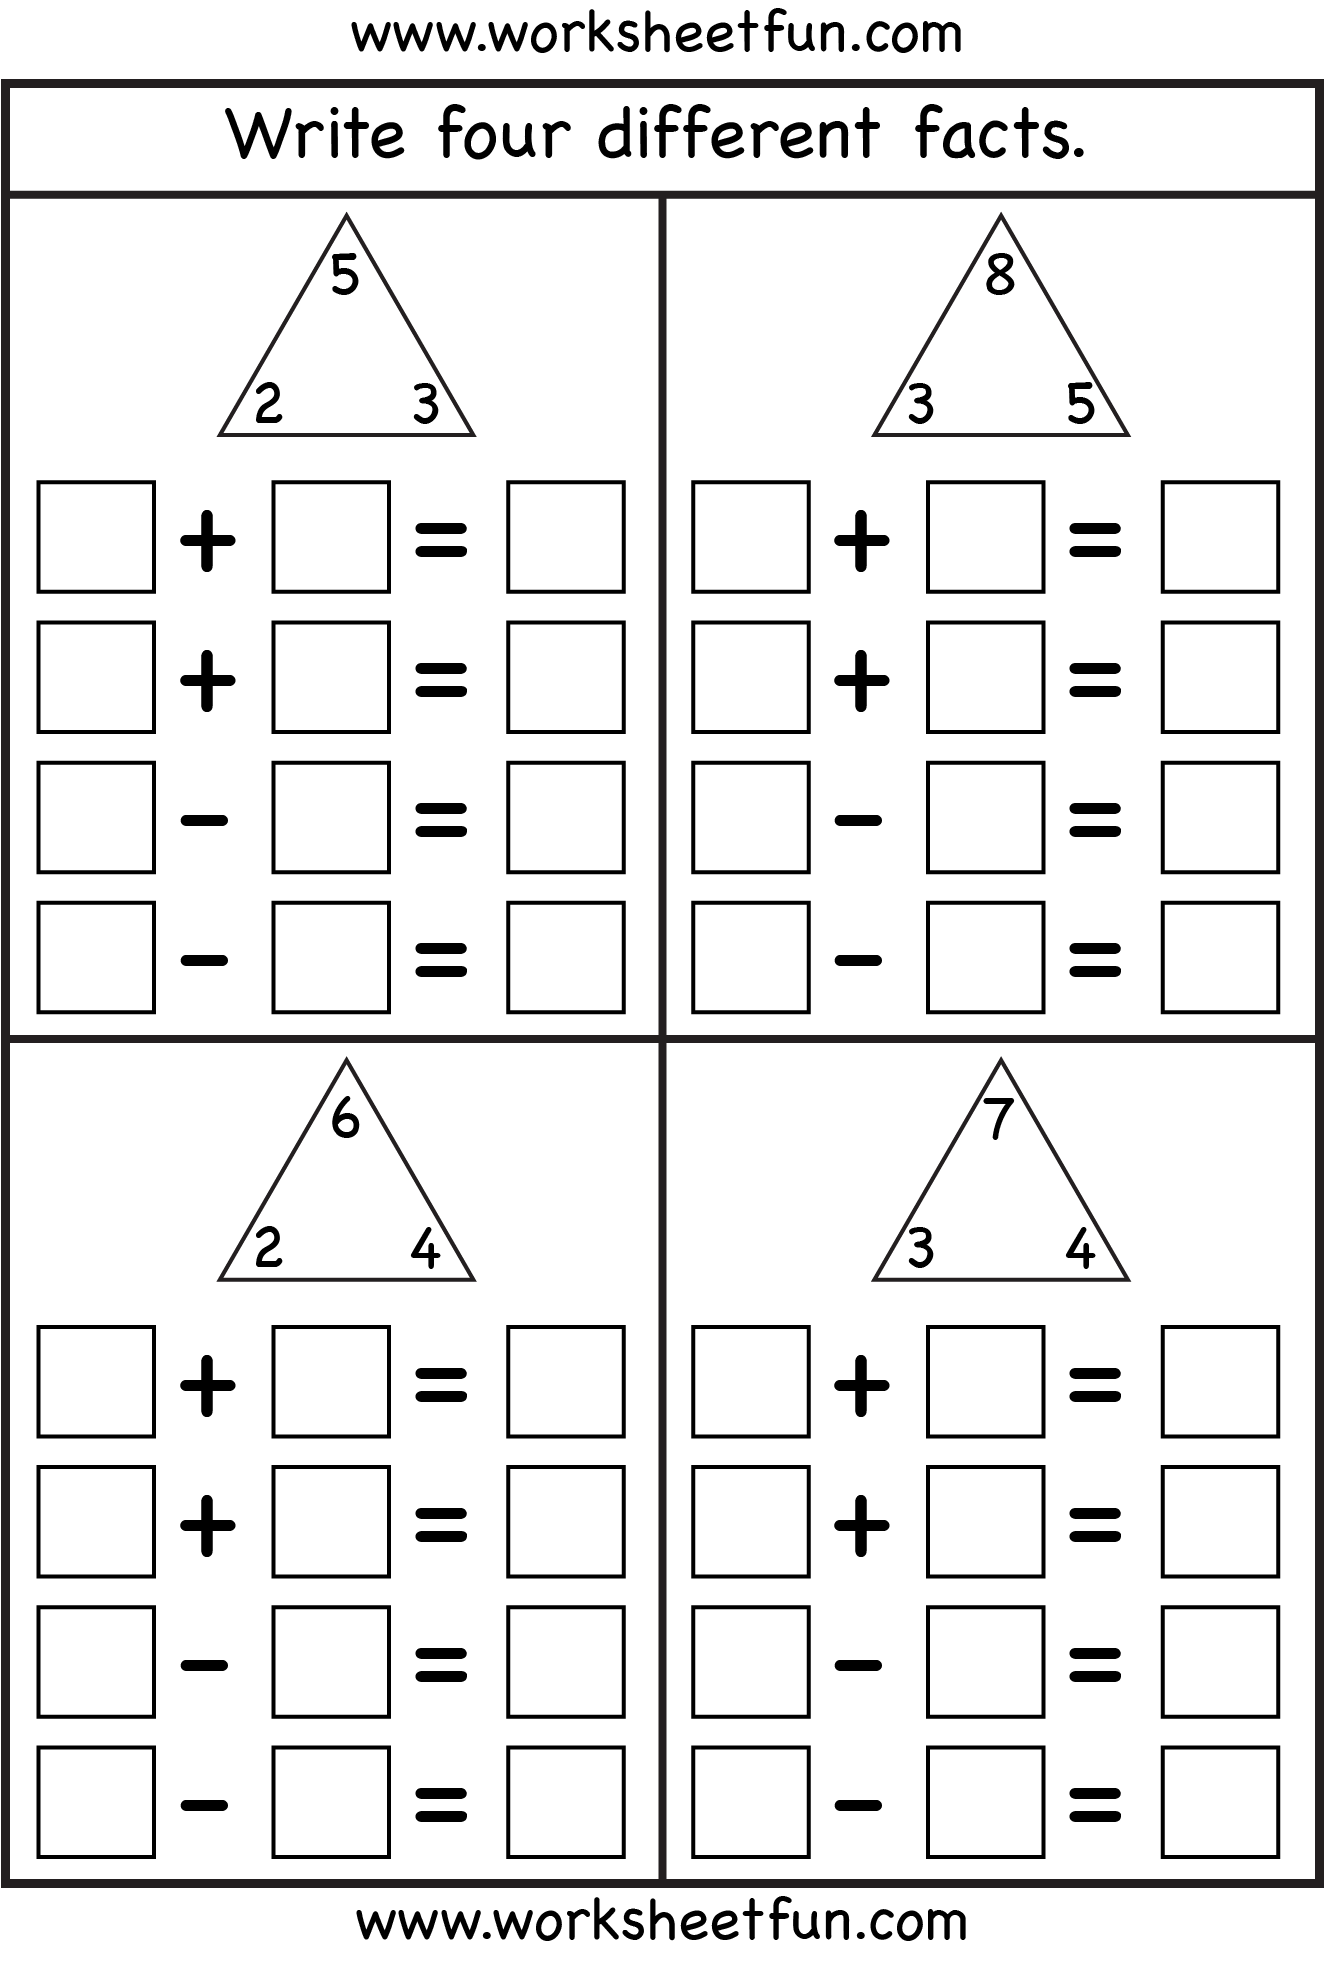 medium resolution of Fact Family – Complete each fact family – 4 Worksheets   Fact family  worksheet